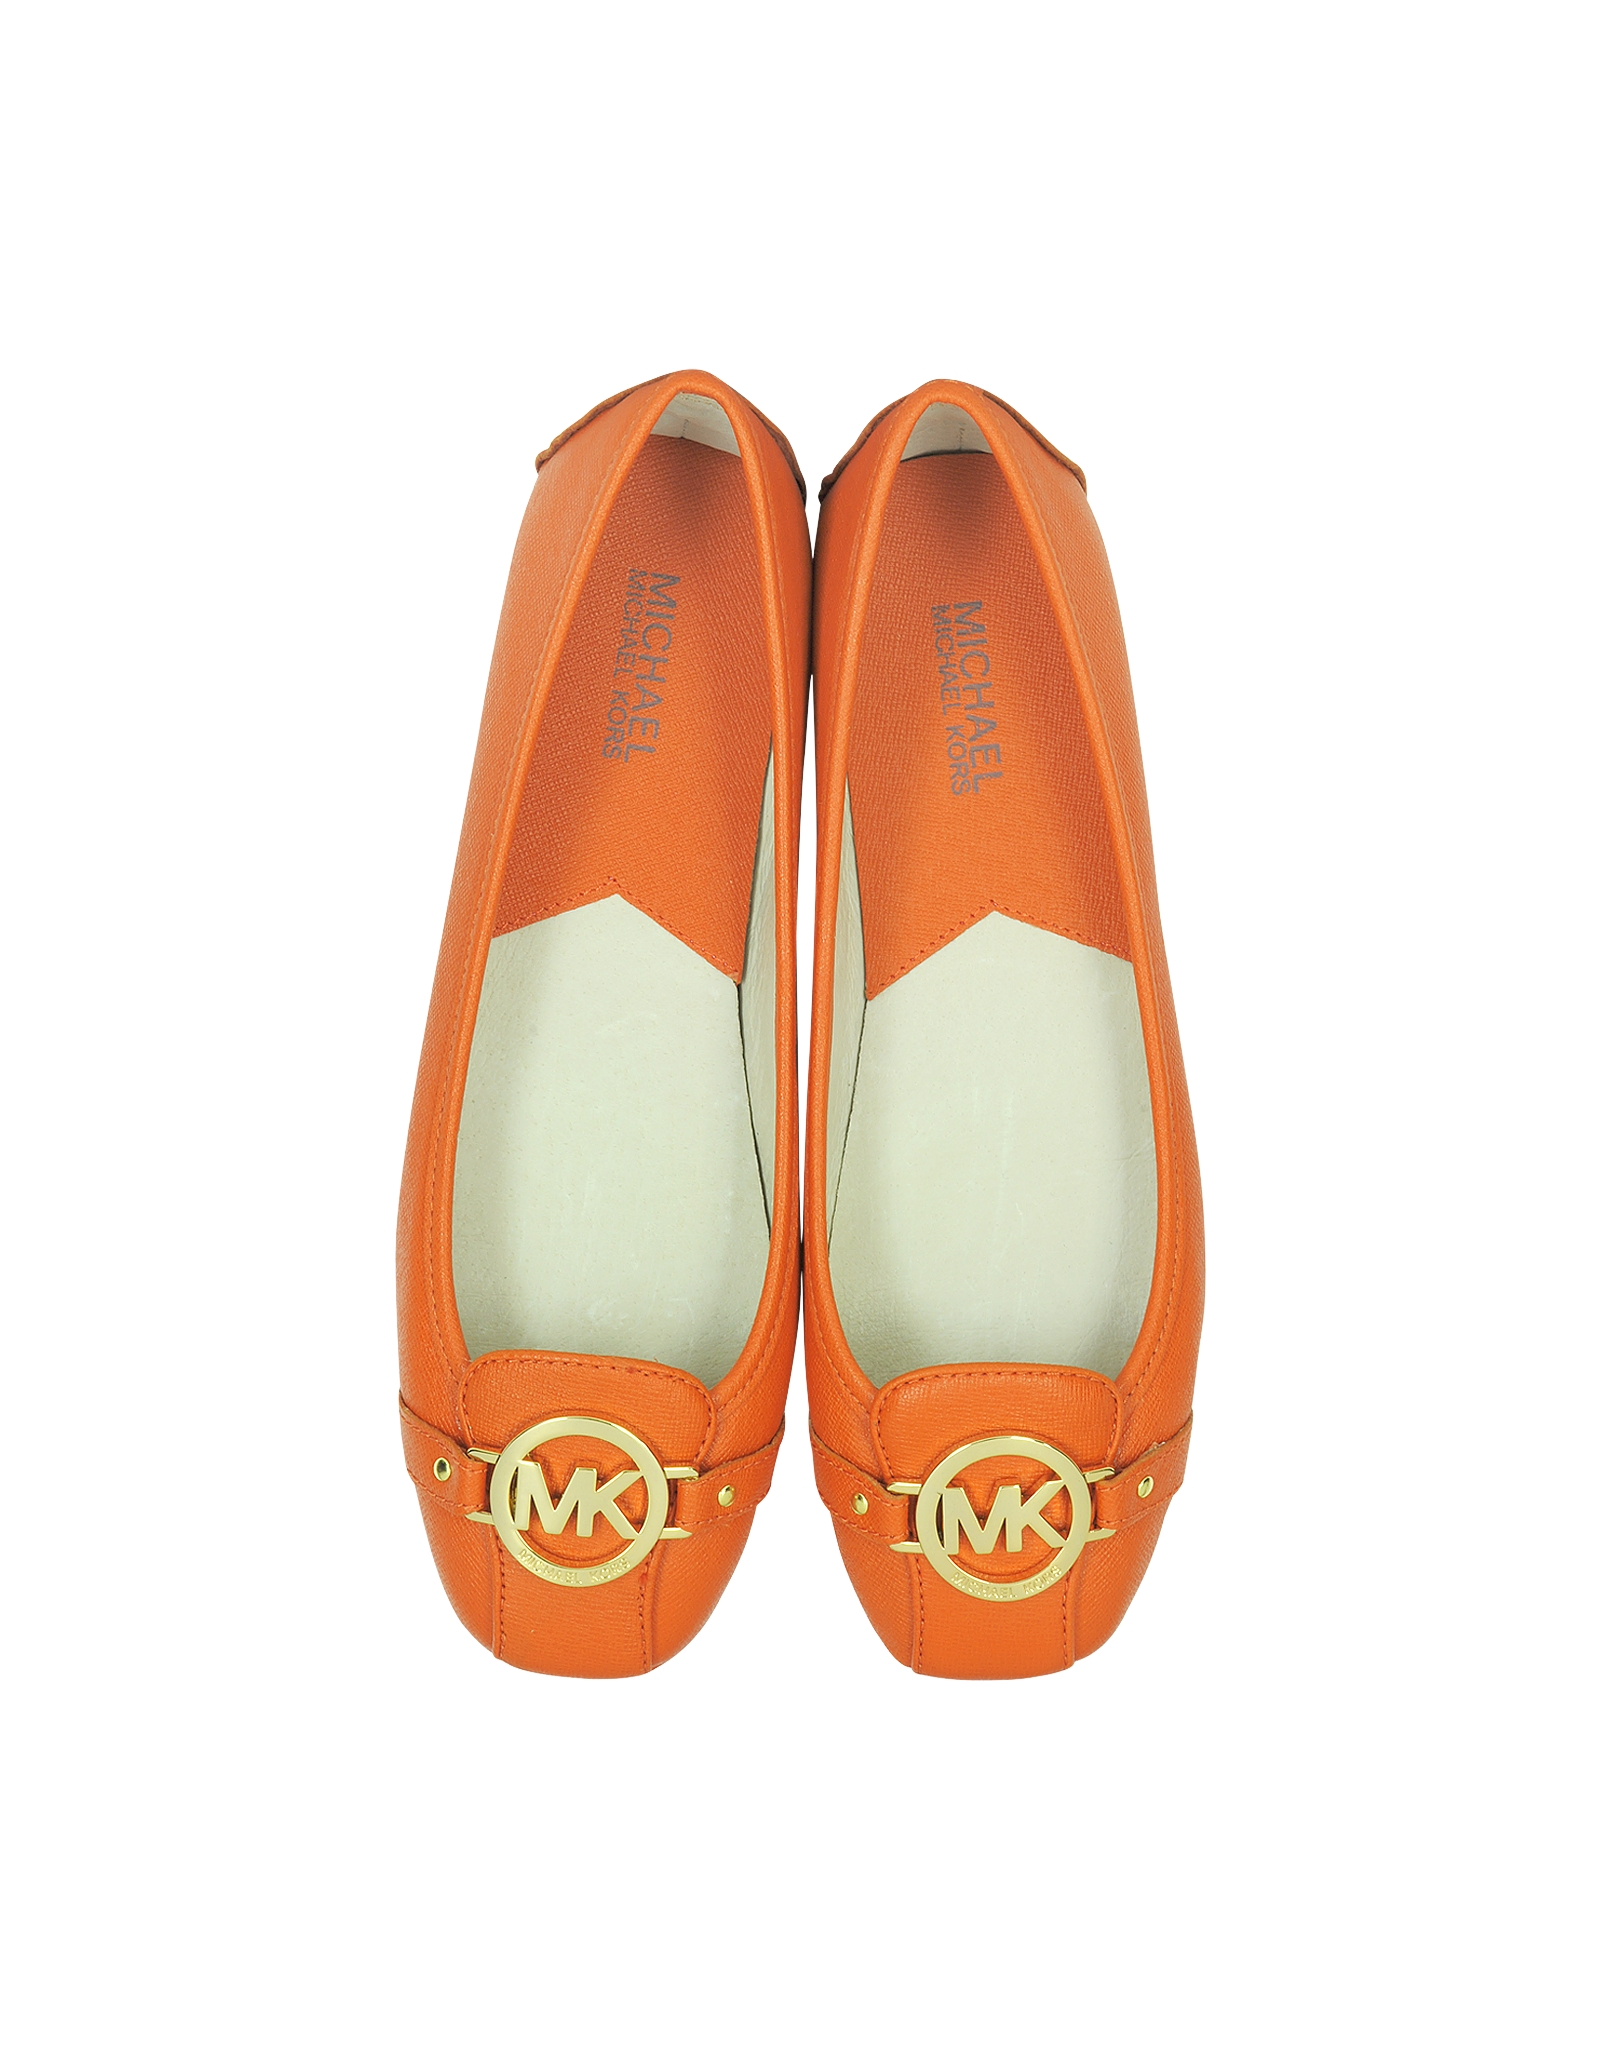 michael kors fulton orange leather flat ballerina in orange lyst. Black Bedroom Furniture Sets. Home Design Ideas